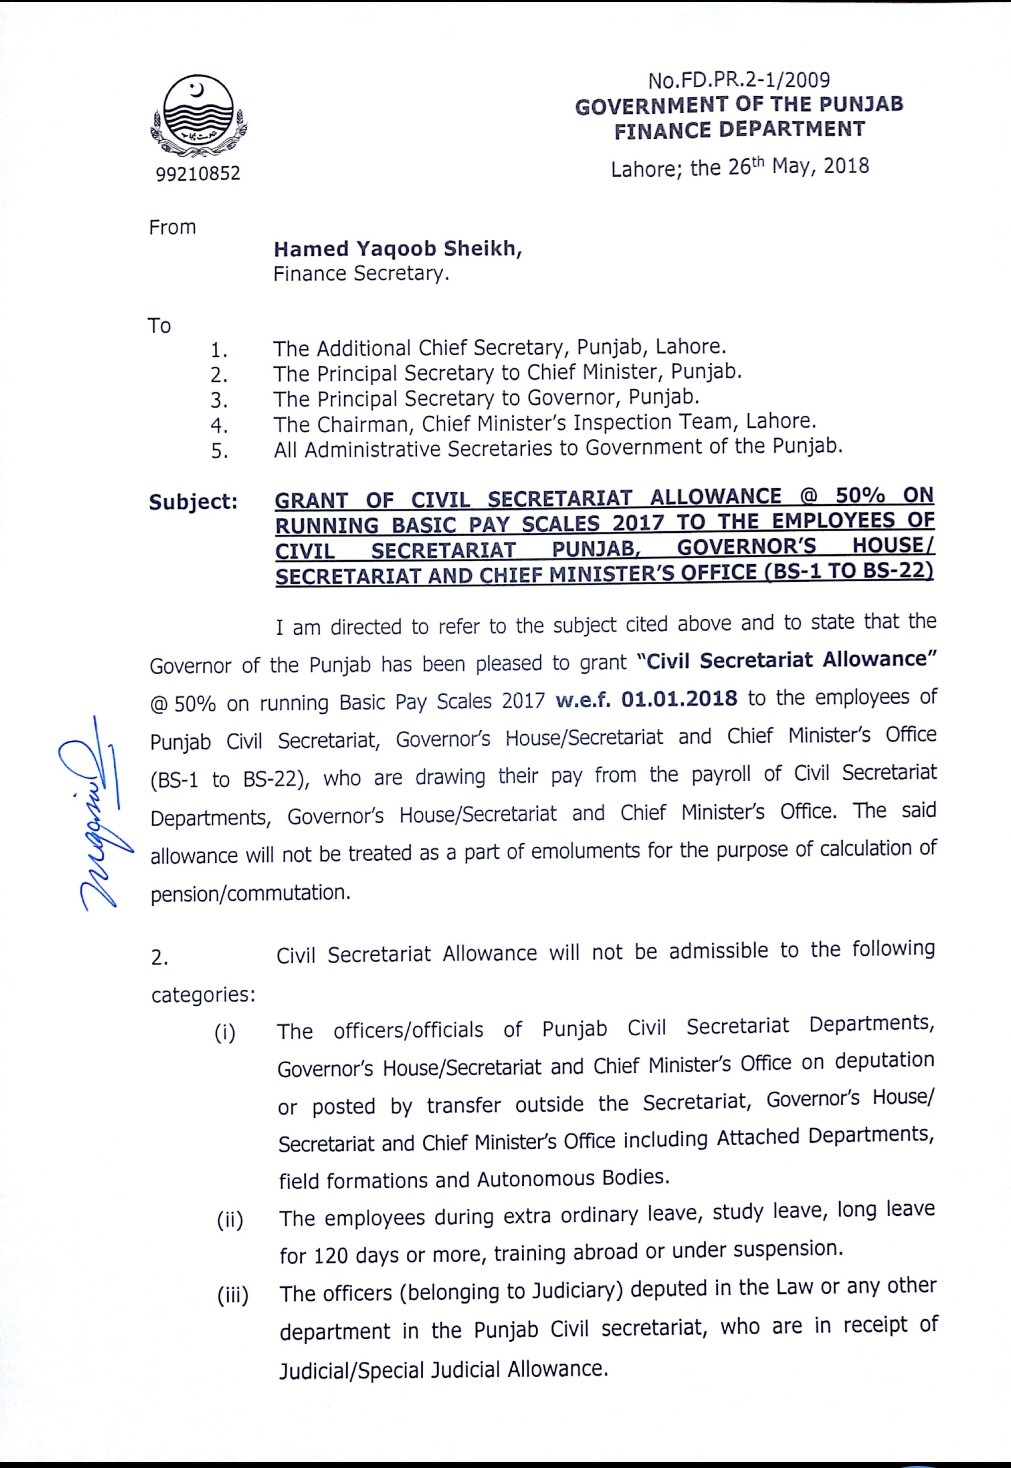 Grant 50% Civil Secretariat Allowance